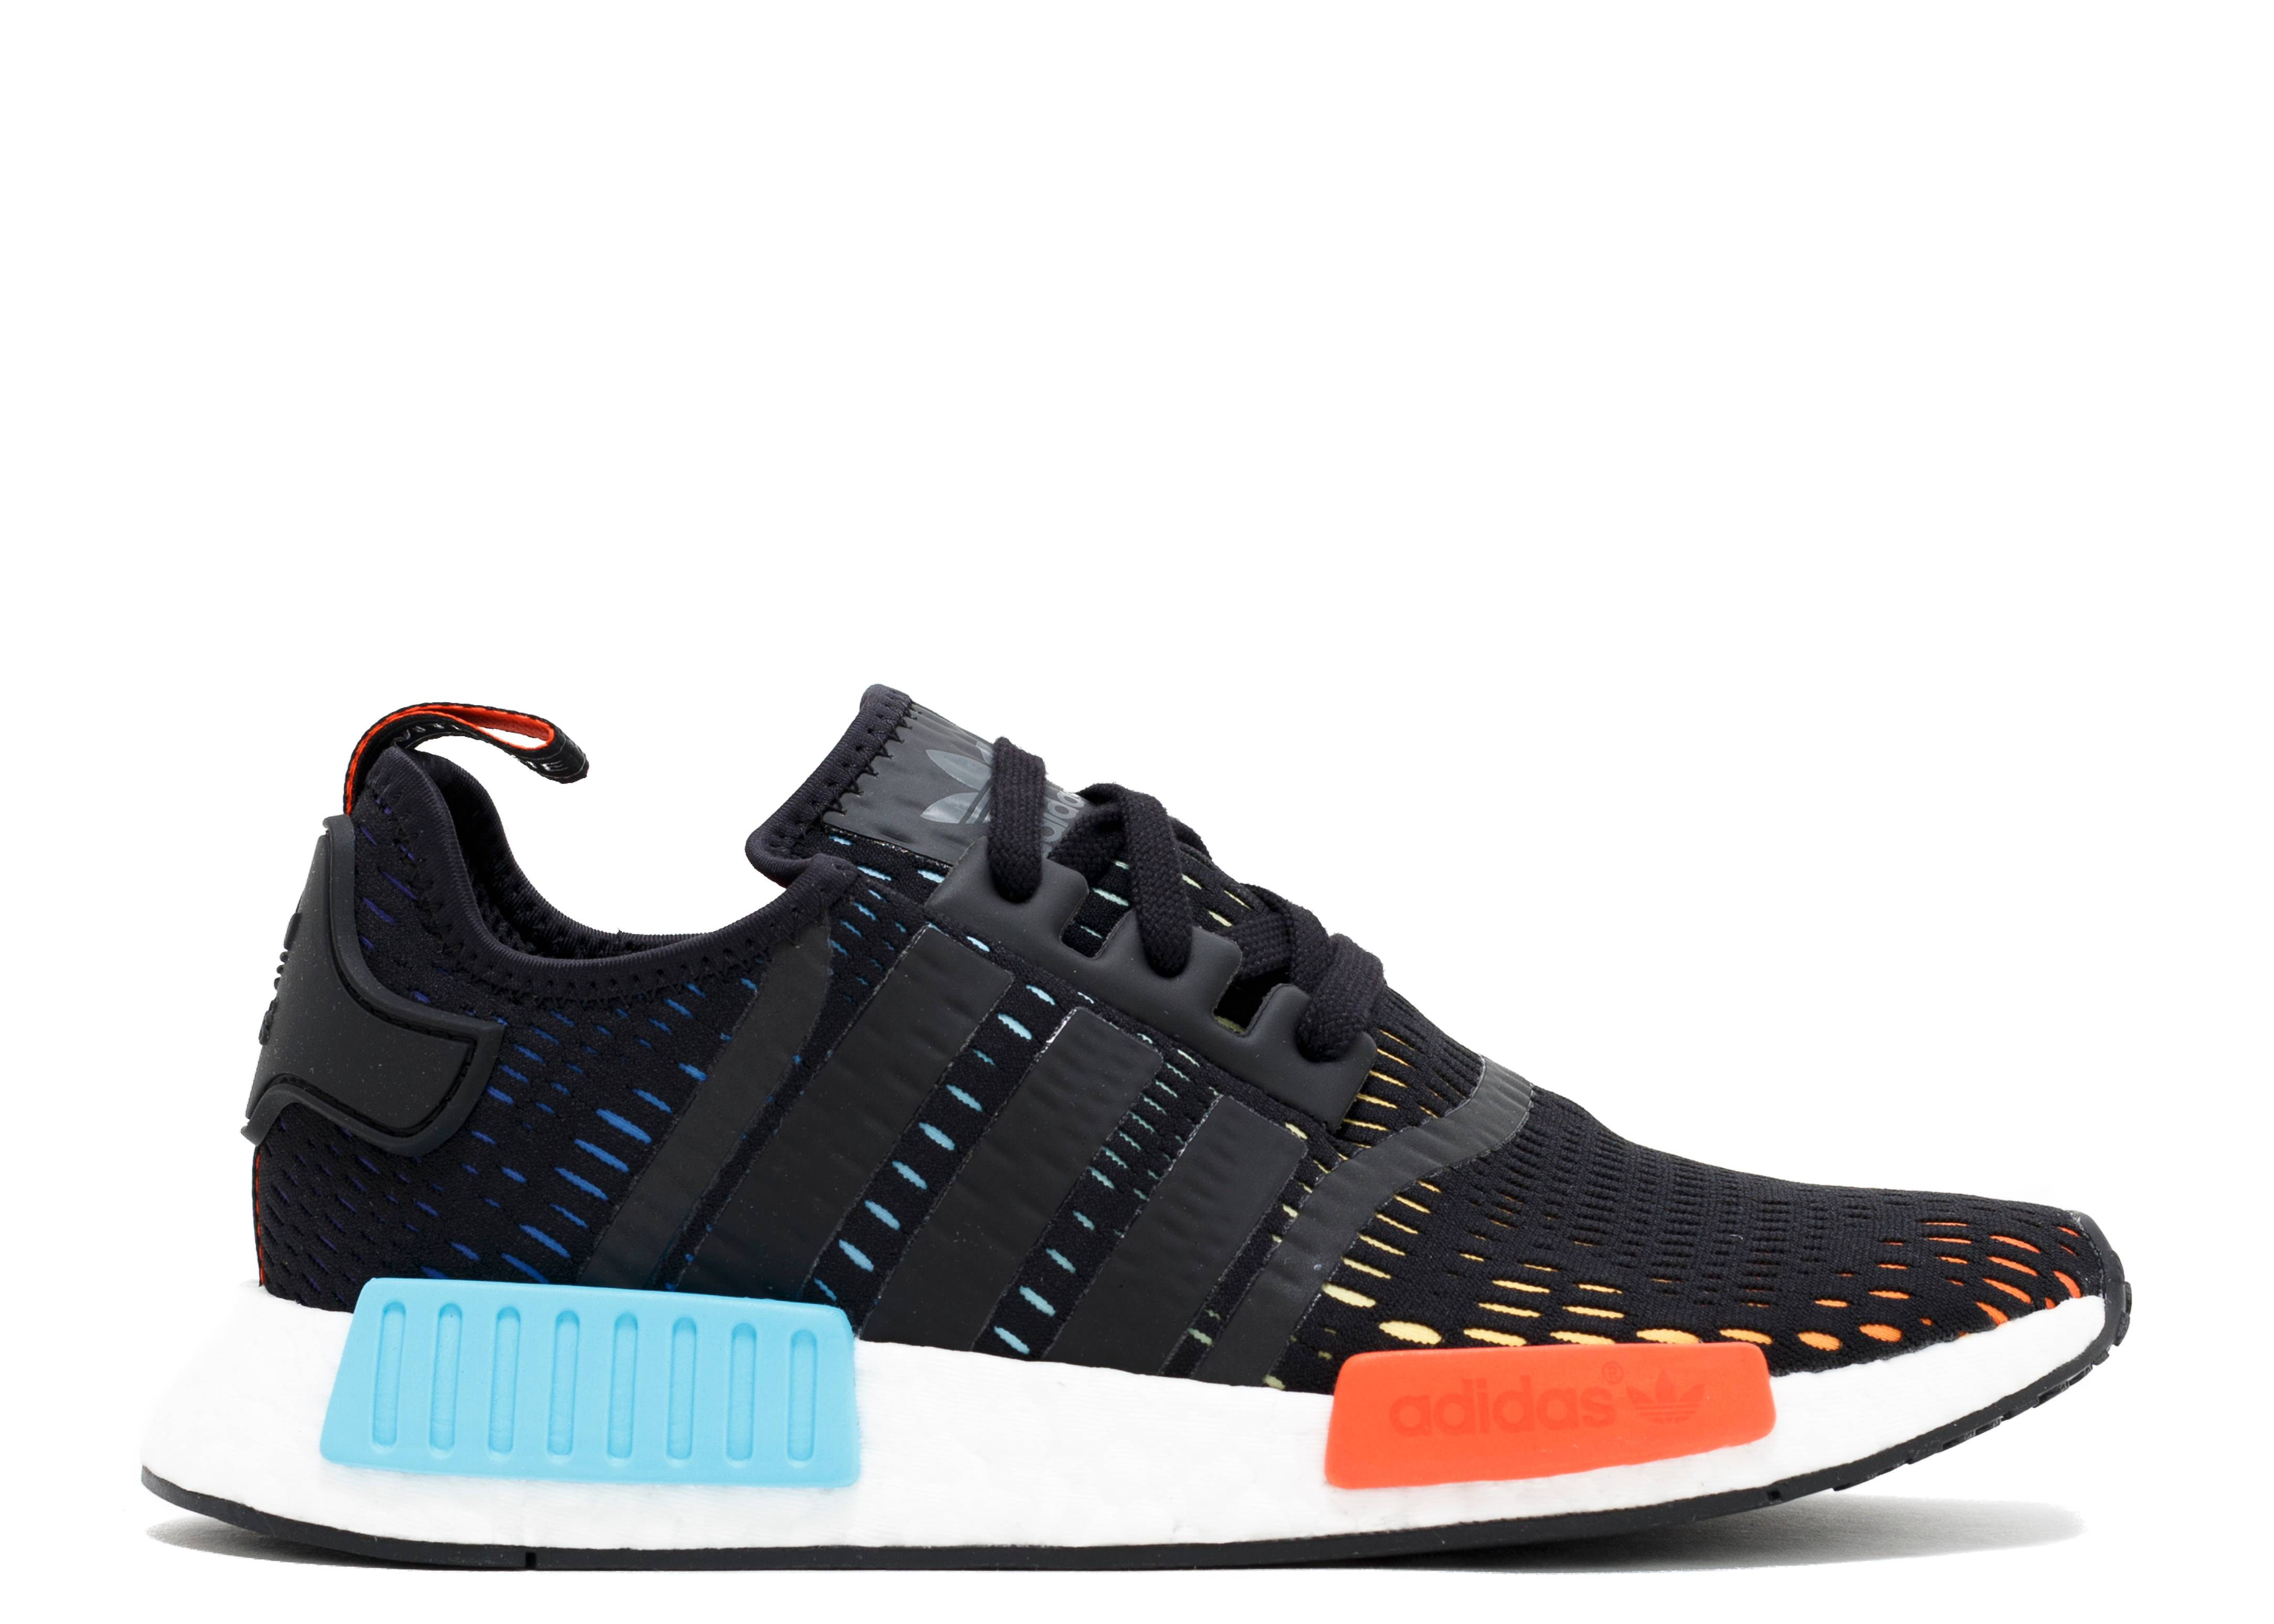 Best Cyber Sell For Shoes